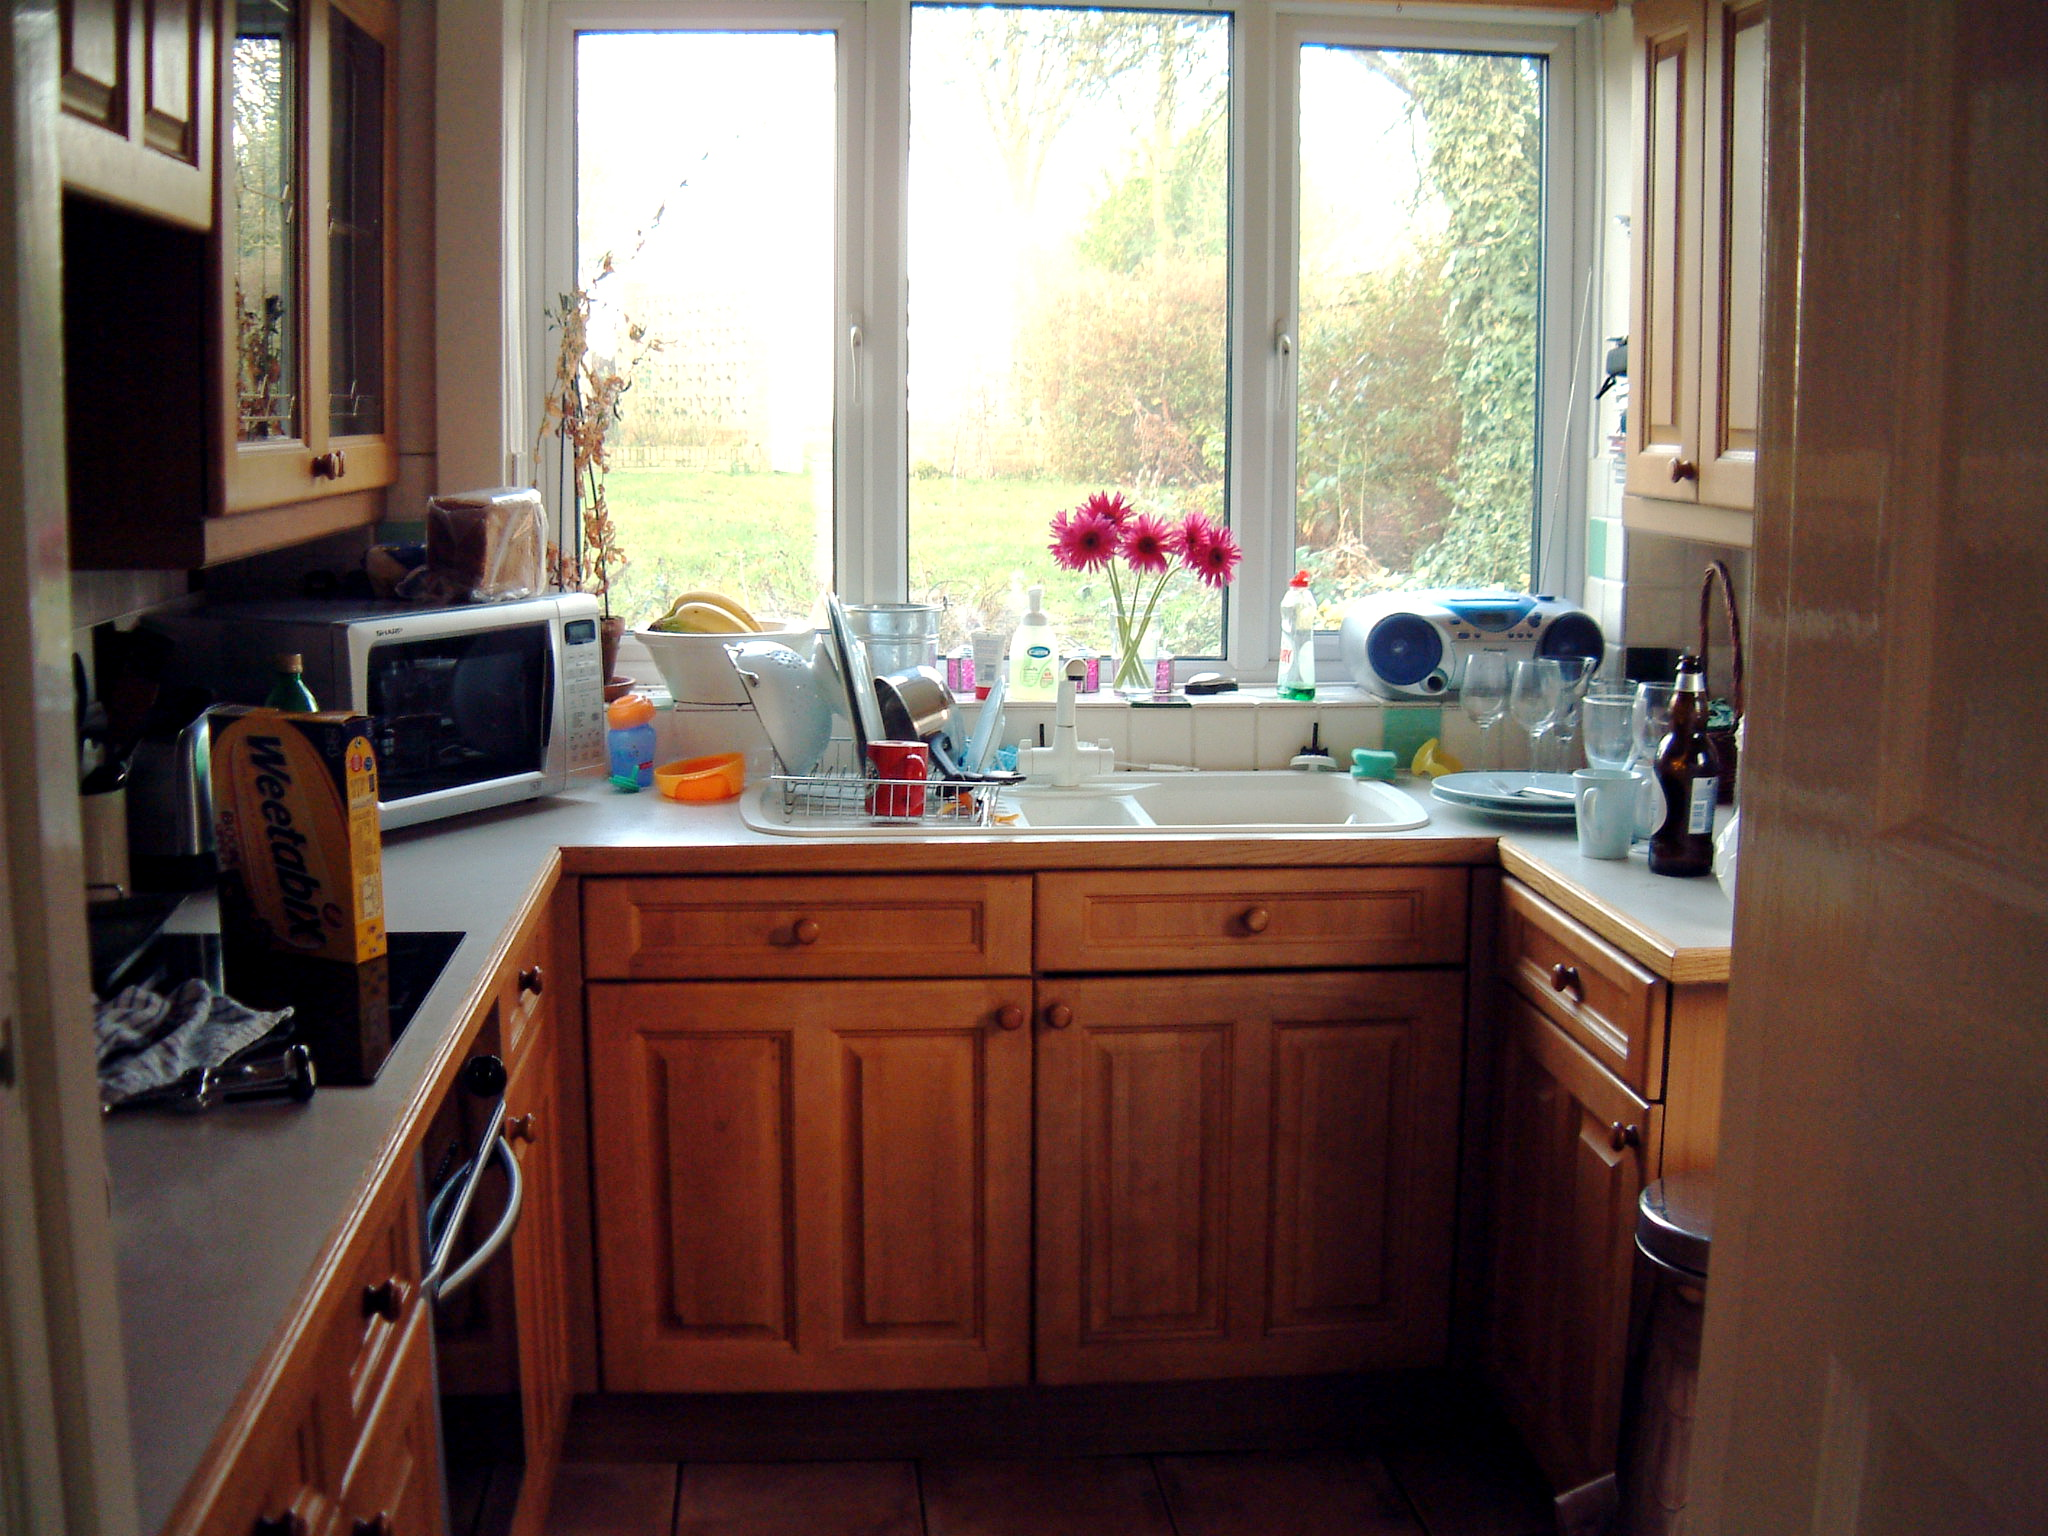 Space Saving Tips for Small Kitchens on Small Space Small Kitchen Ideas  id=41339